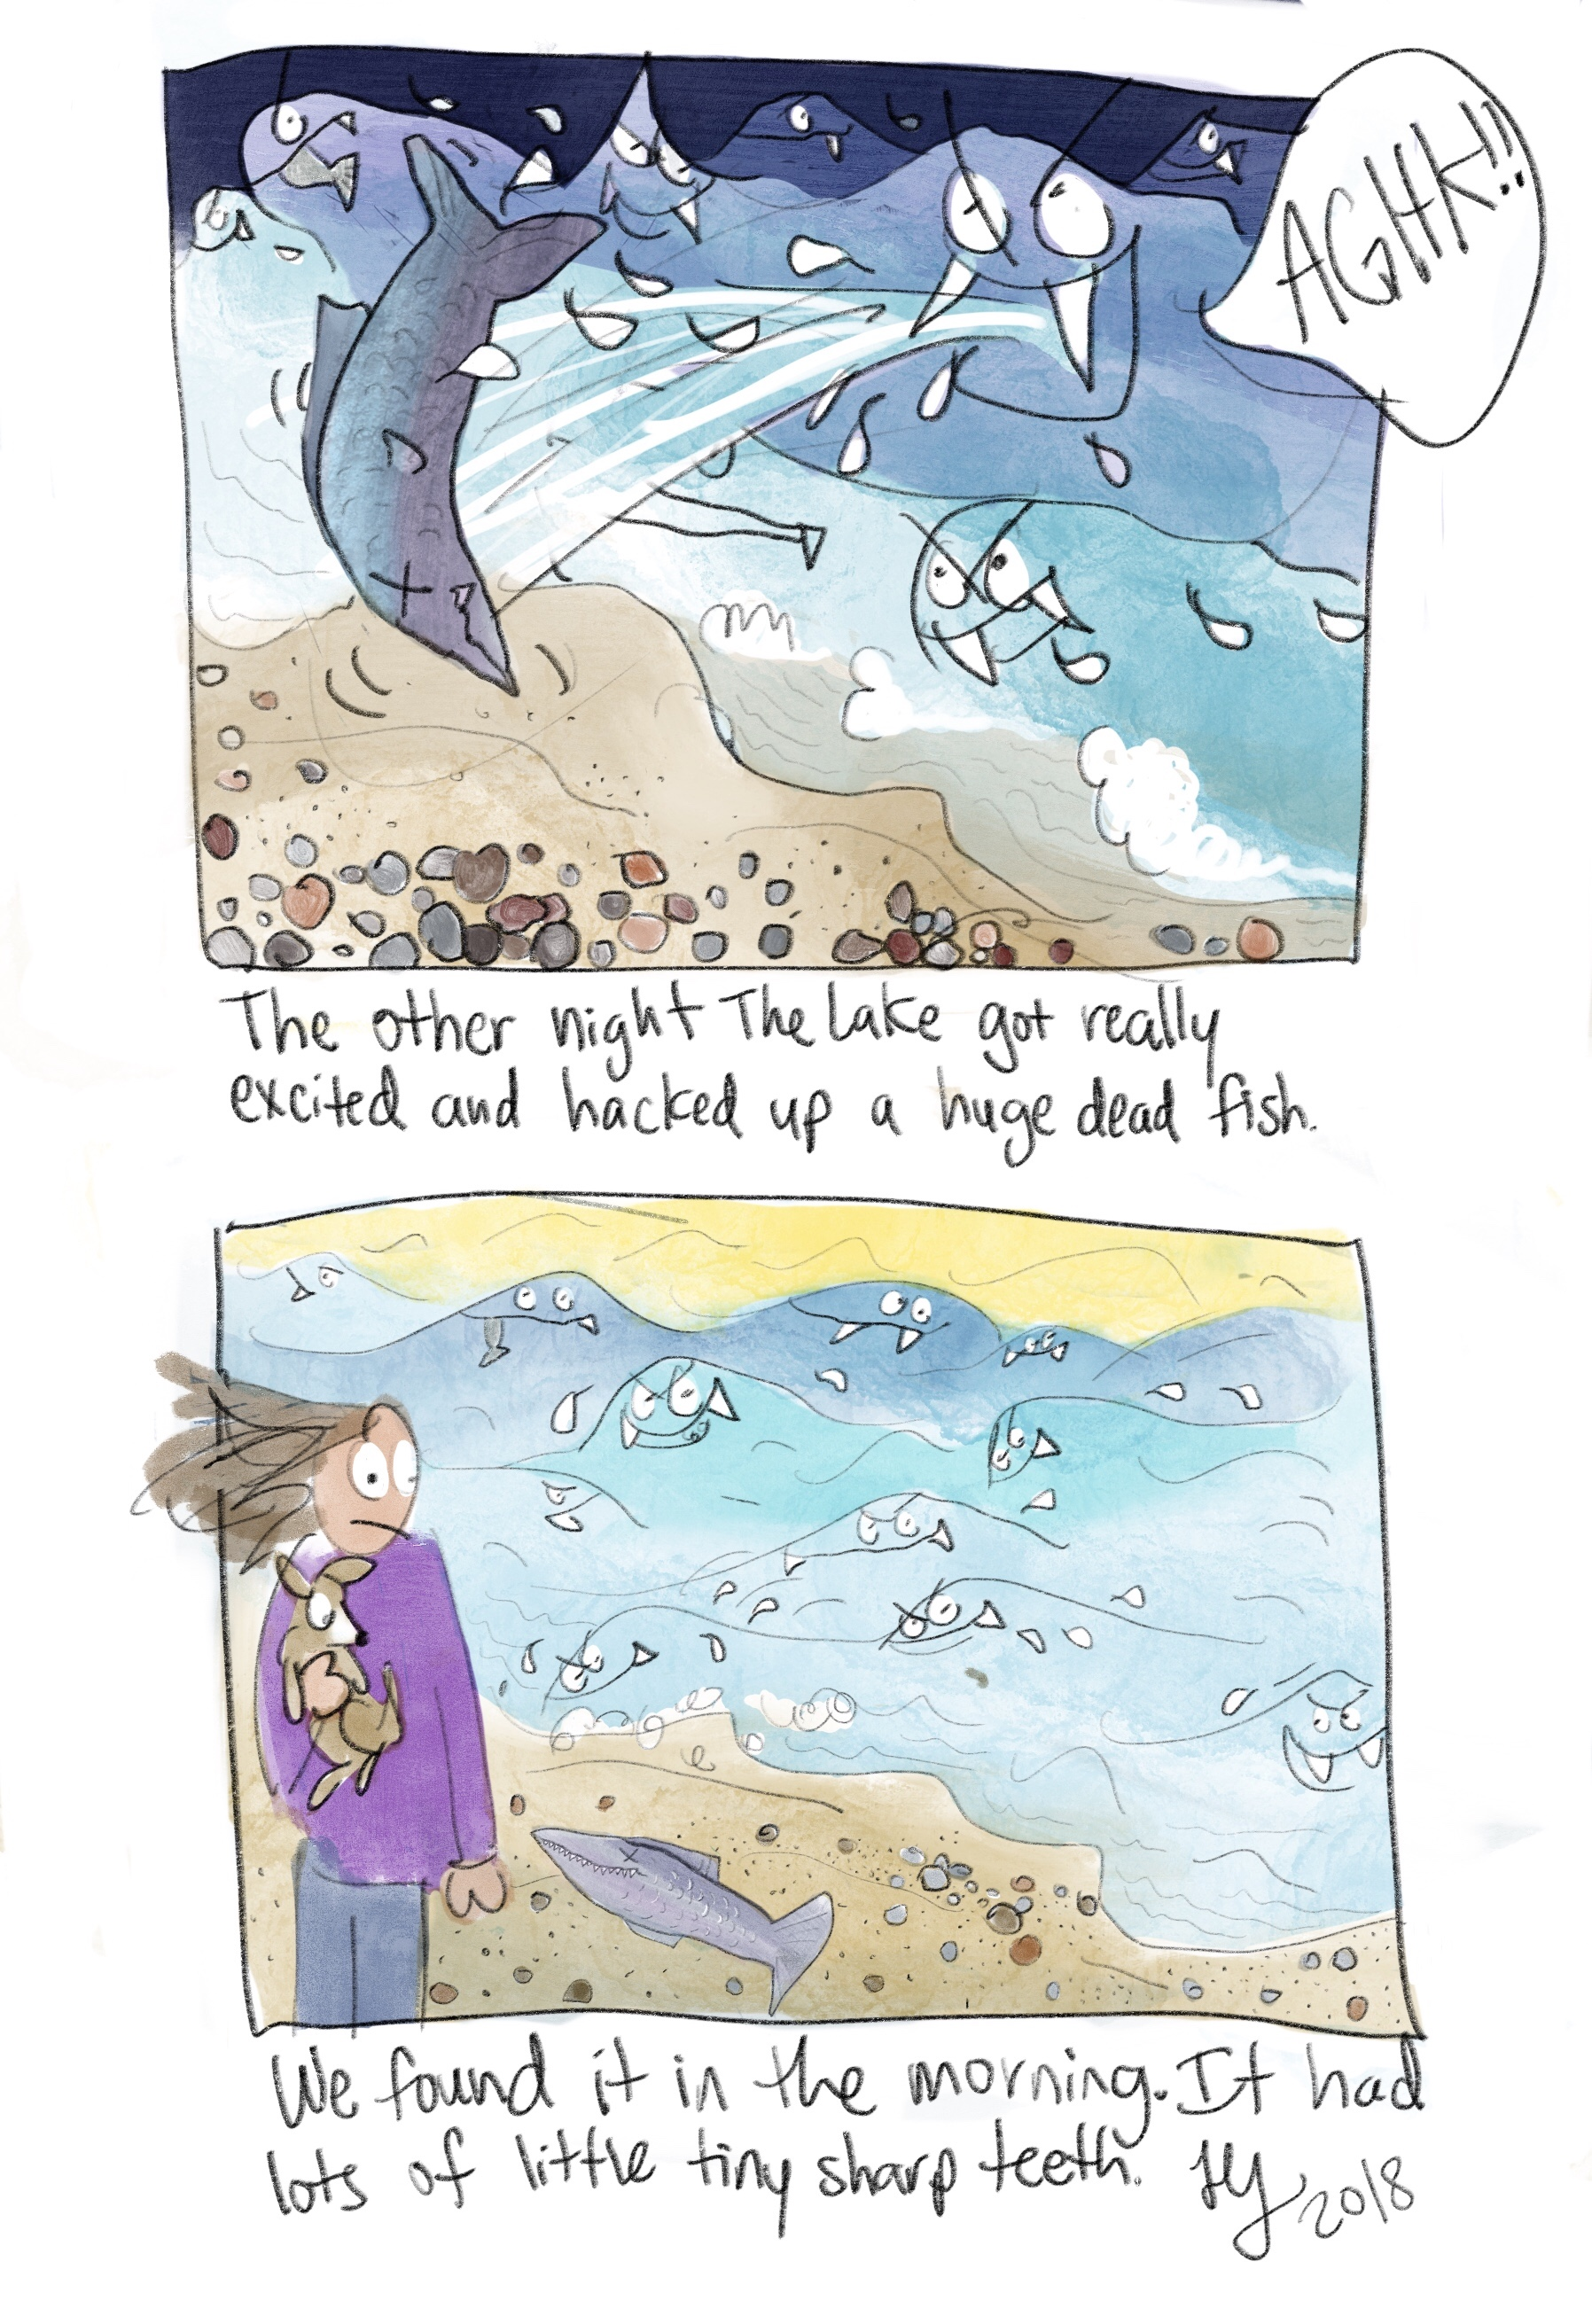 I drew this funny autobiographic comic about Lake Michigan. Sometimes it randomly pukes up random things. This morning out of no where there was an enormous dead fish on the beach. It had lots of tiny little pointy teeth. I like drawing the waves with fangs.